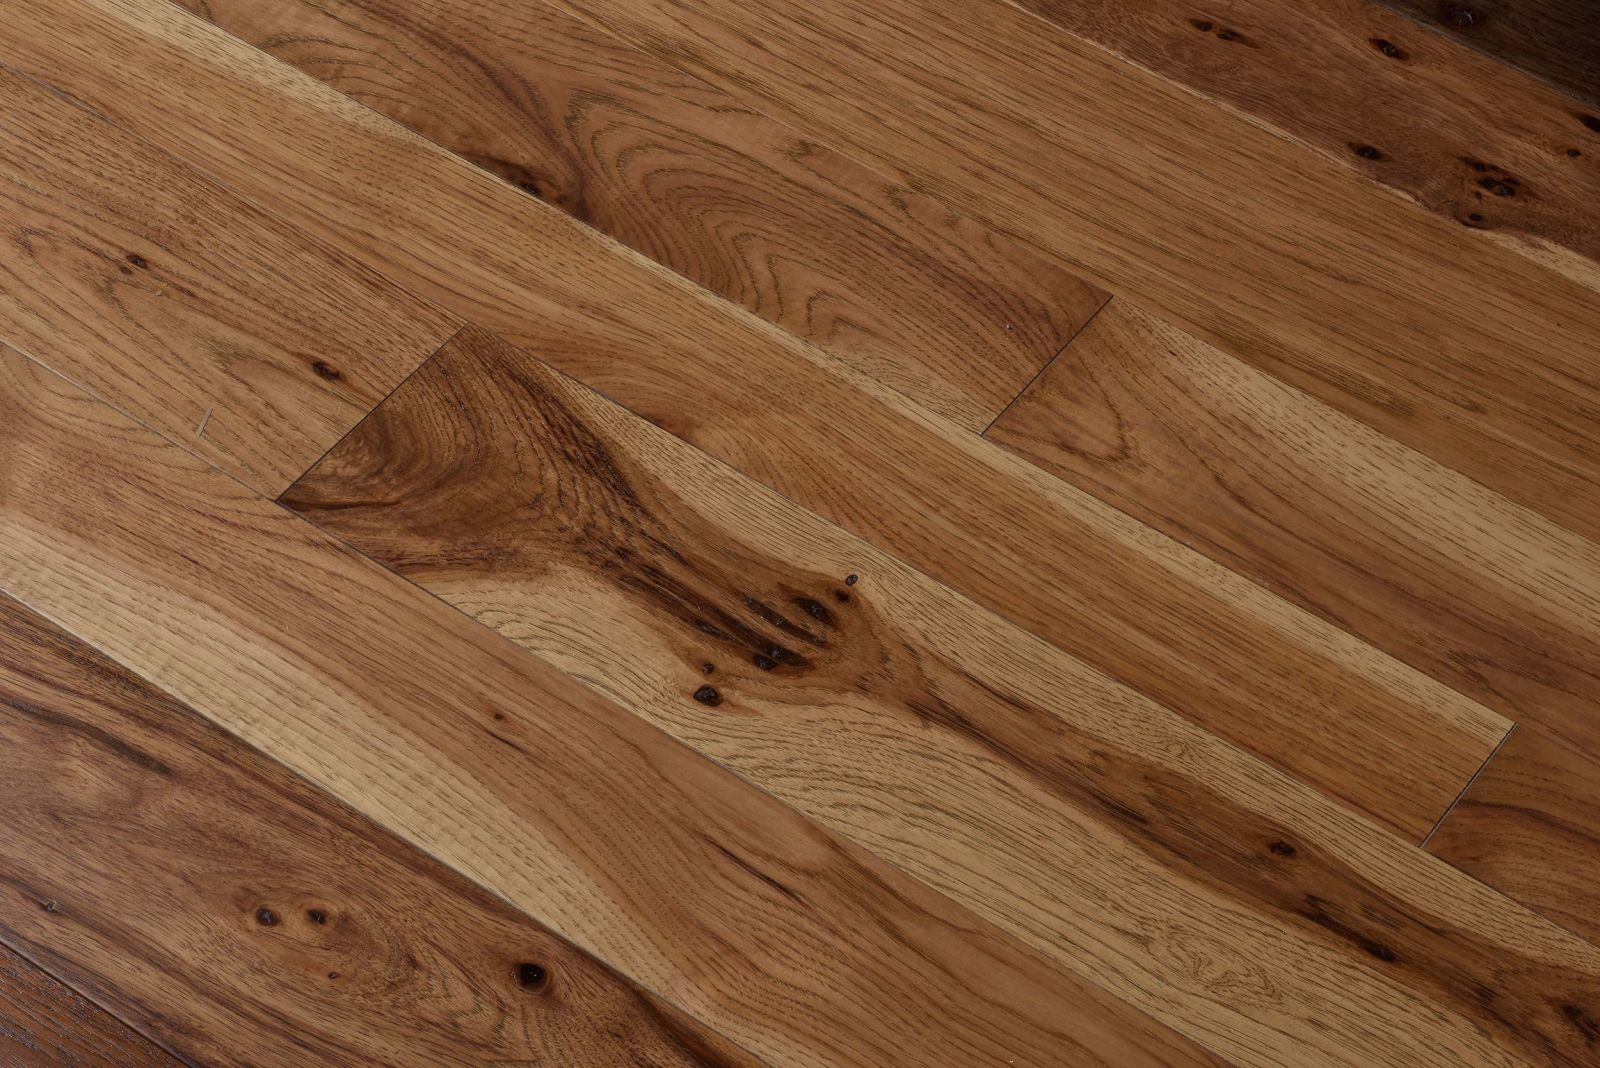 Mw Early American On Hickory Wood Flooring Hickory Wood Floors Hickory Hardwood Floors Hickory Flooring